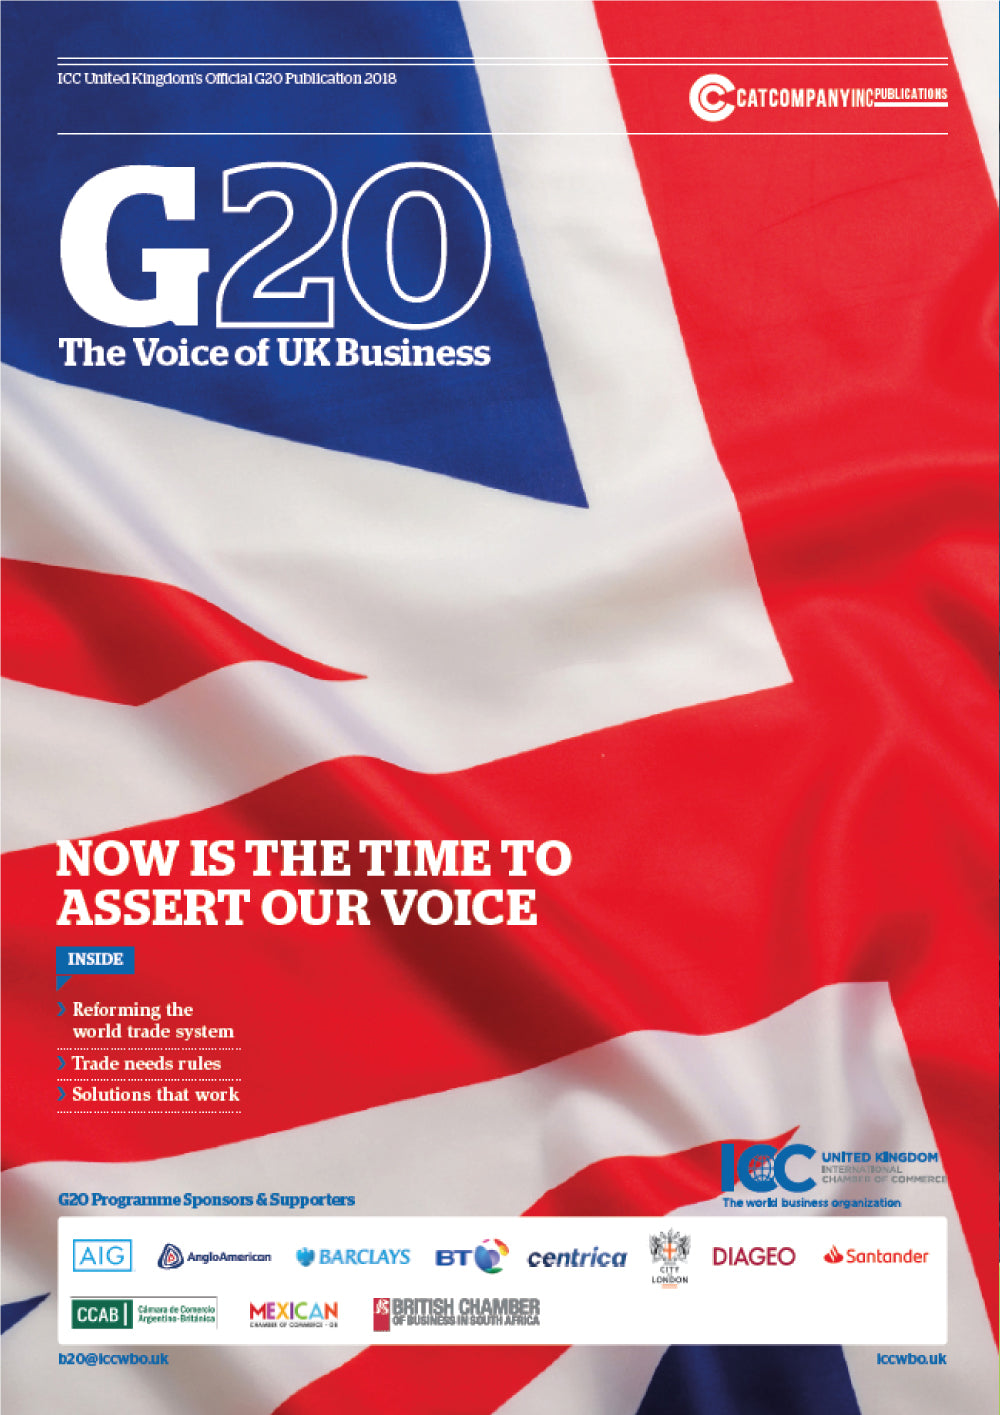 ICC G20: The Voice of UK Business 2018